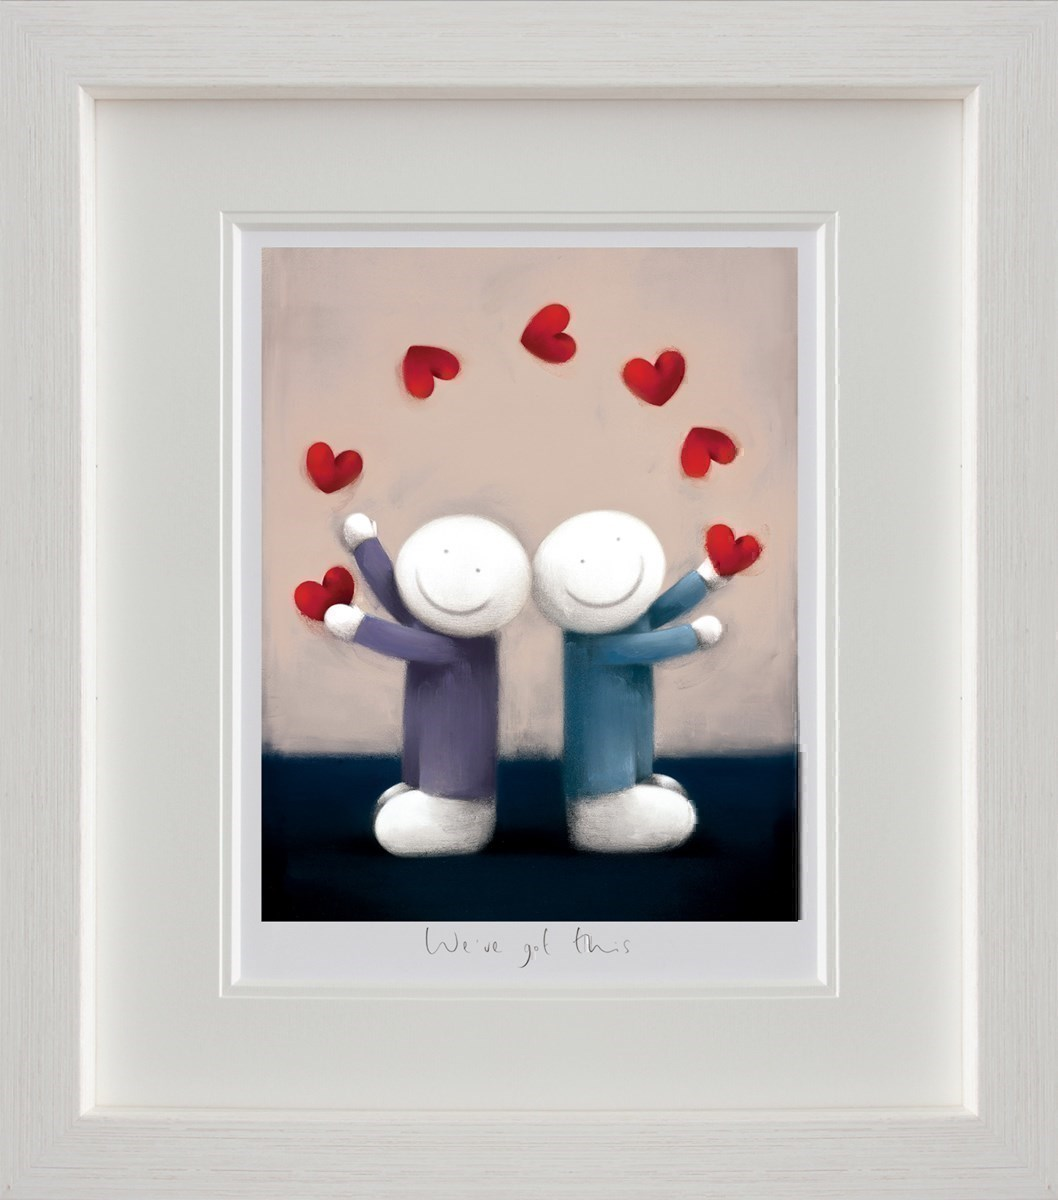 We've Got This by Doug Hyde - Limited Edition on Paper sized 14x18 inches. Available from Whitewall Galleries